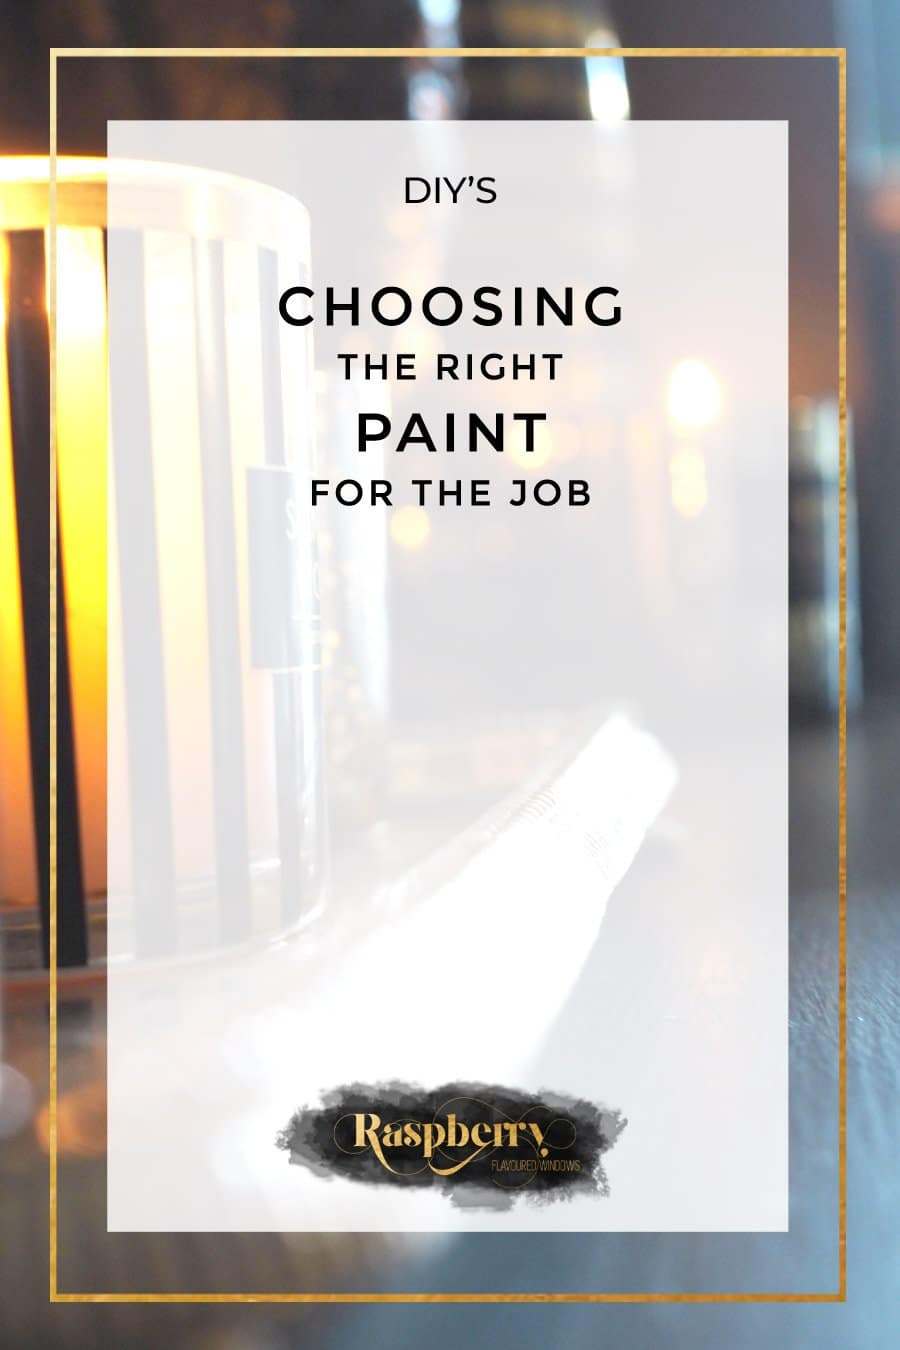 Choosing The Right Paint for The Job